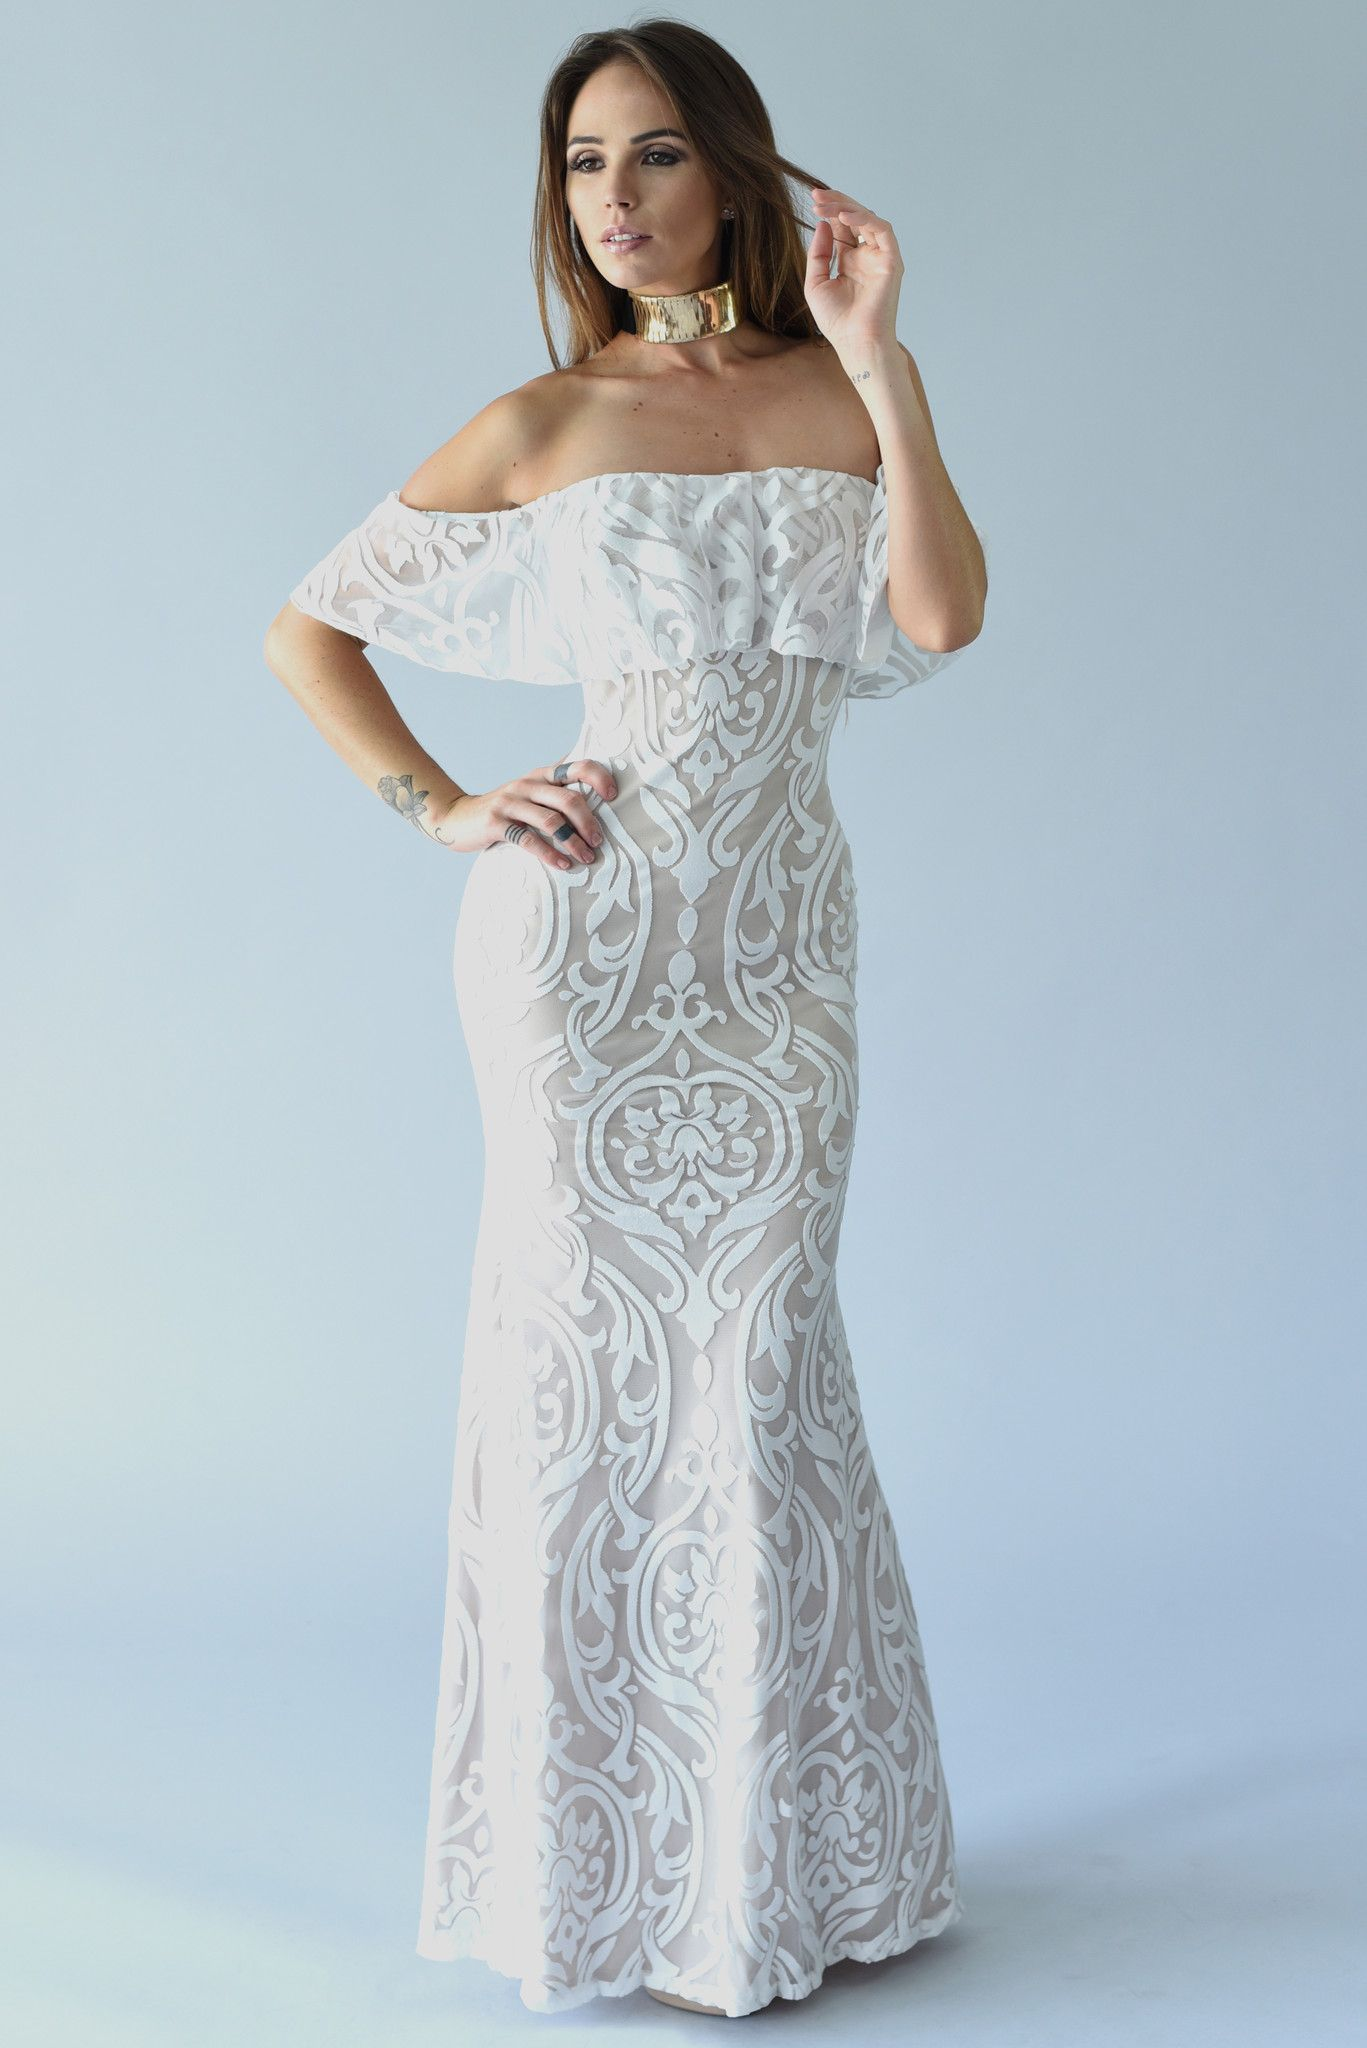 Ruffle Off Shoulder Lace Maxi Dress - Off White | Products ...